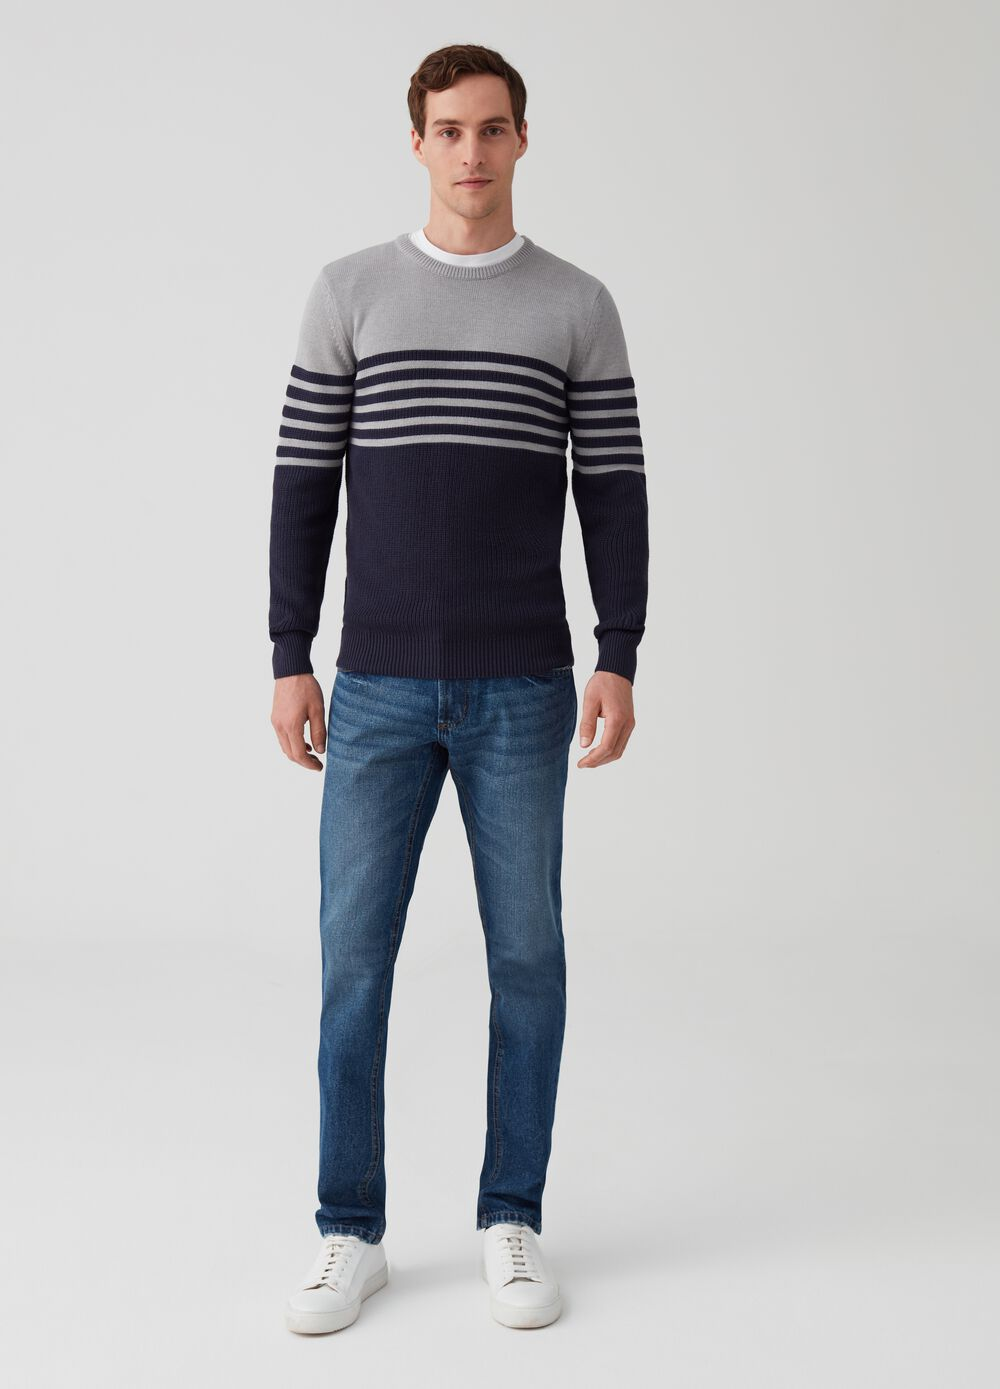 Knitted pullover with stripes and ribbing